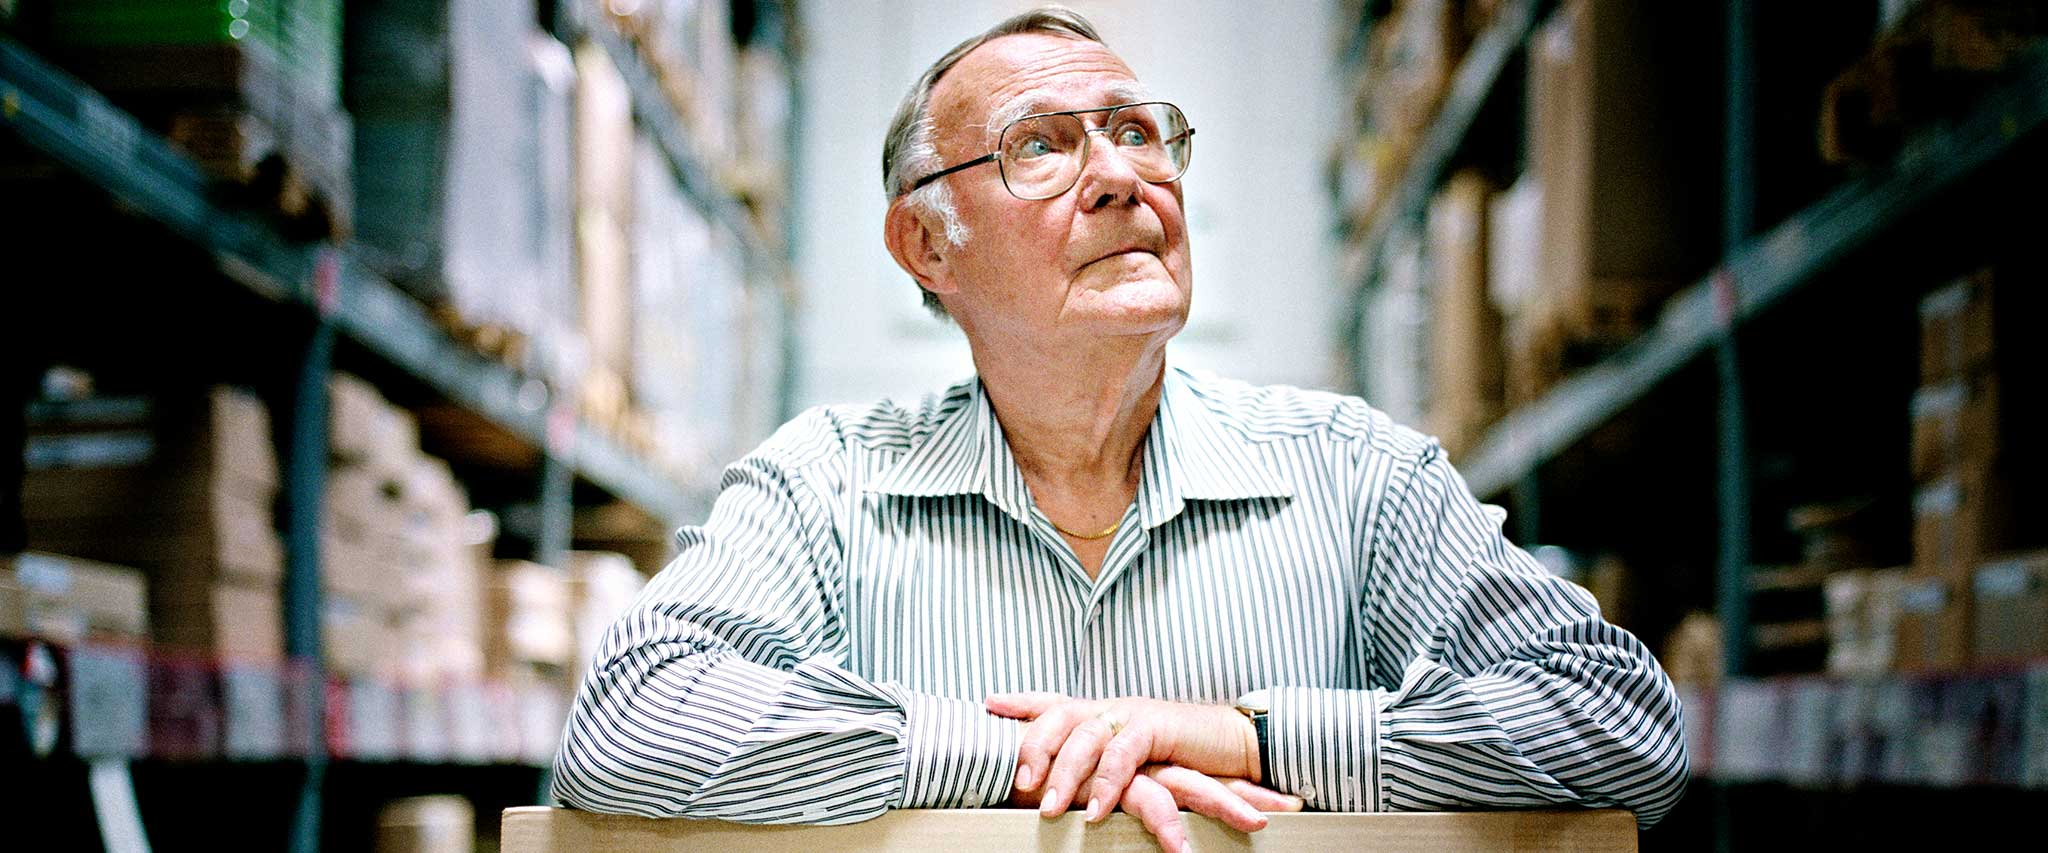 A portrait of a young Ingvar Kamprad posing next to the IKEA store in Älmhult.